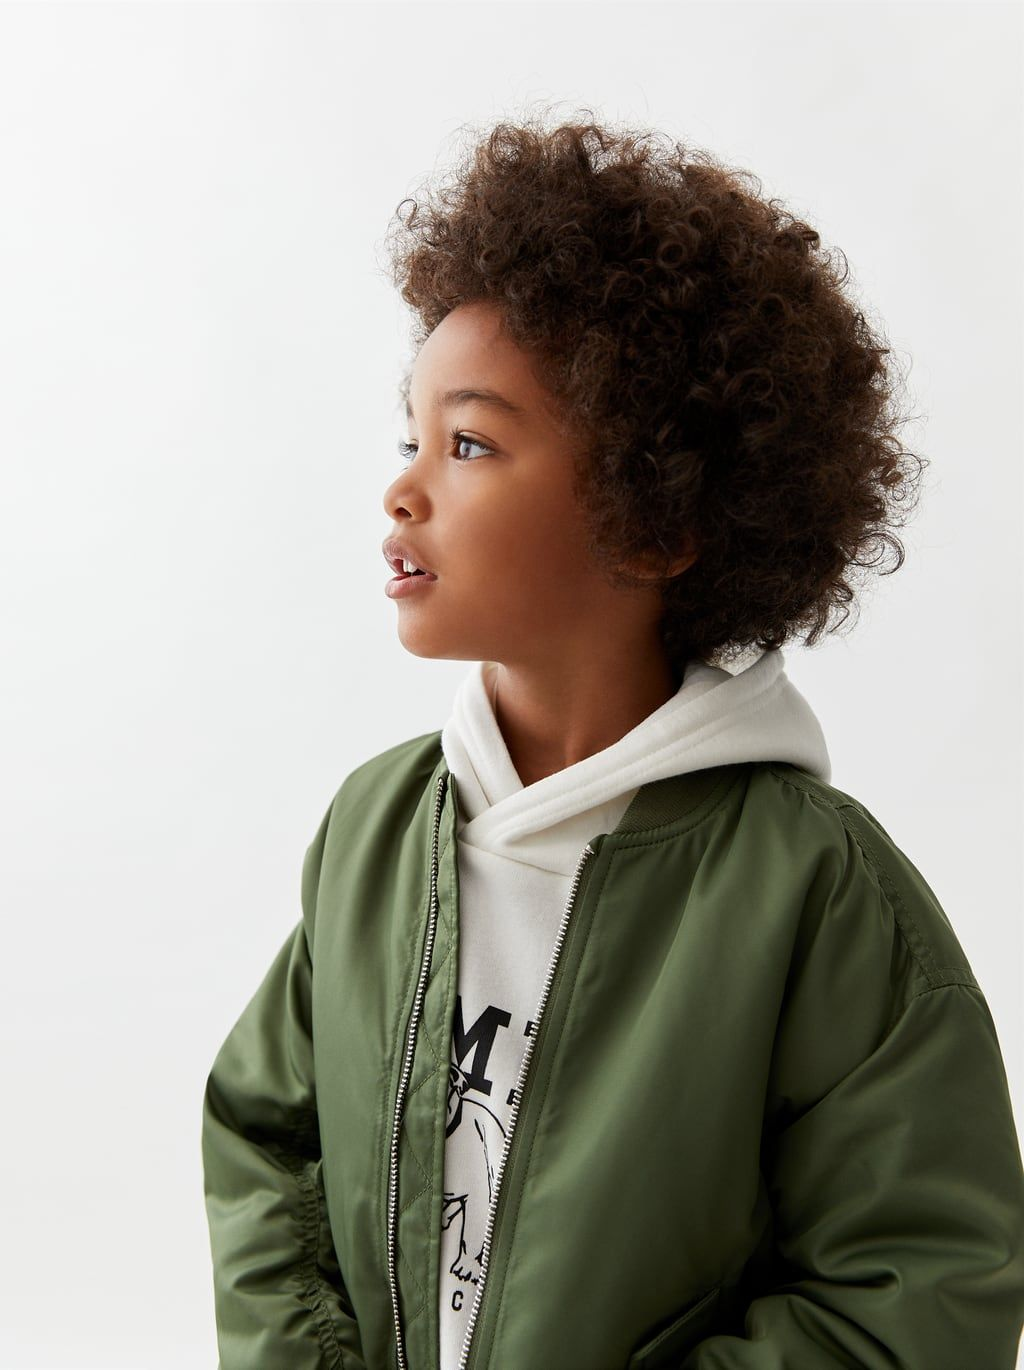 BACK TO SCHOOLBOY     yearsKIDS  ZARA United States  FALL